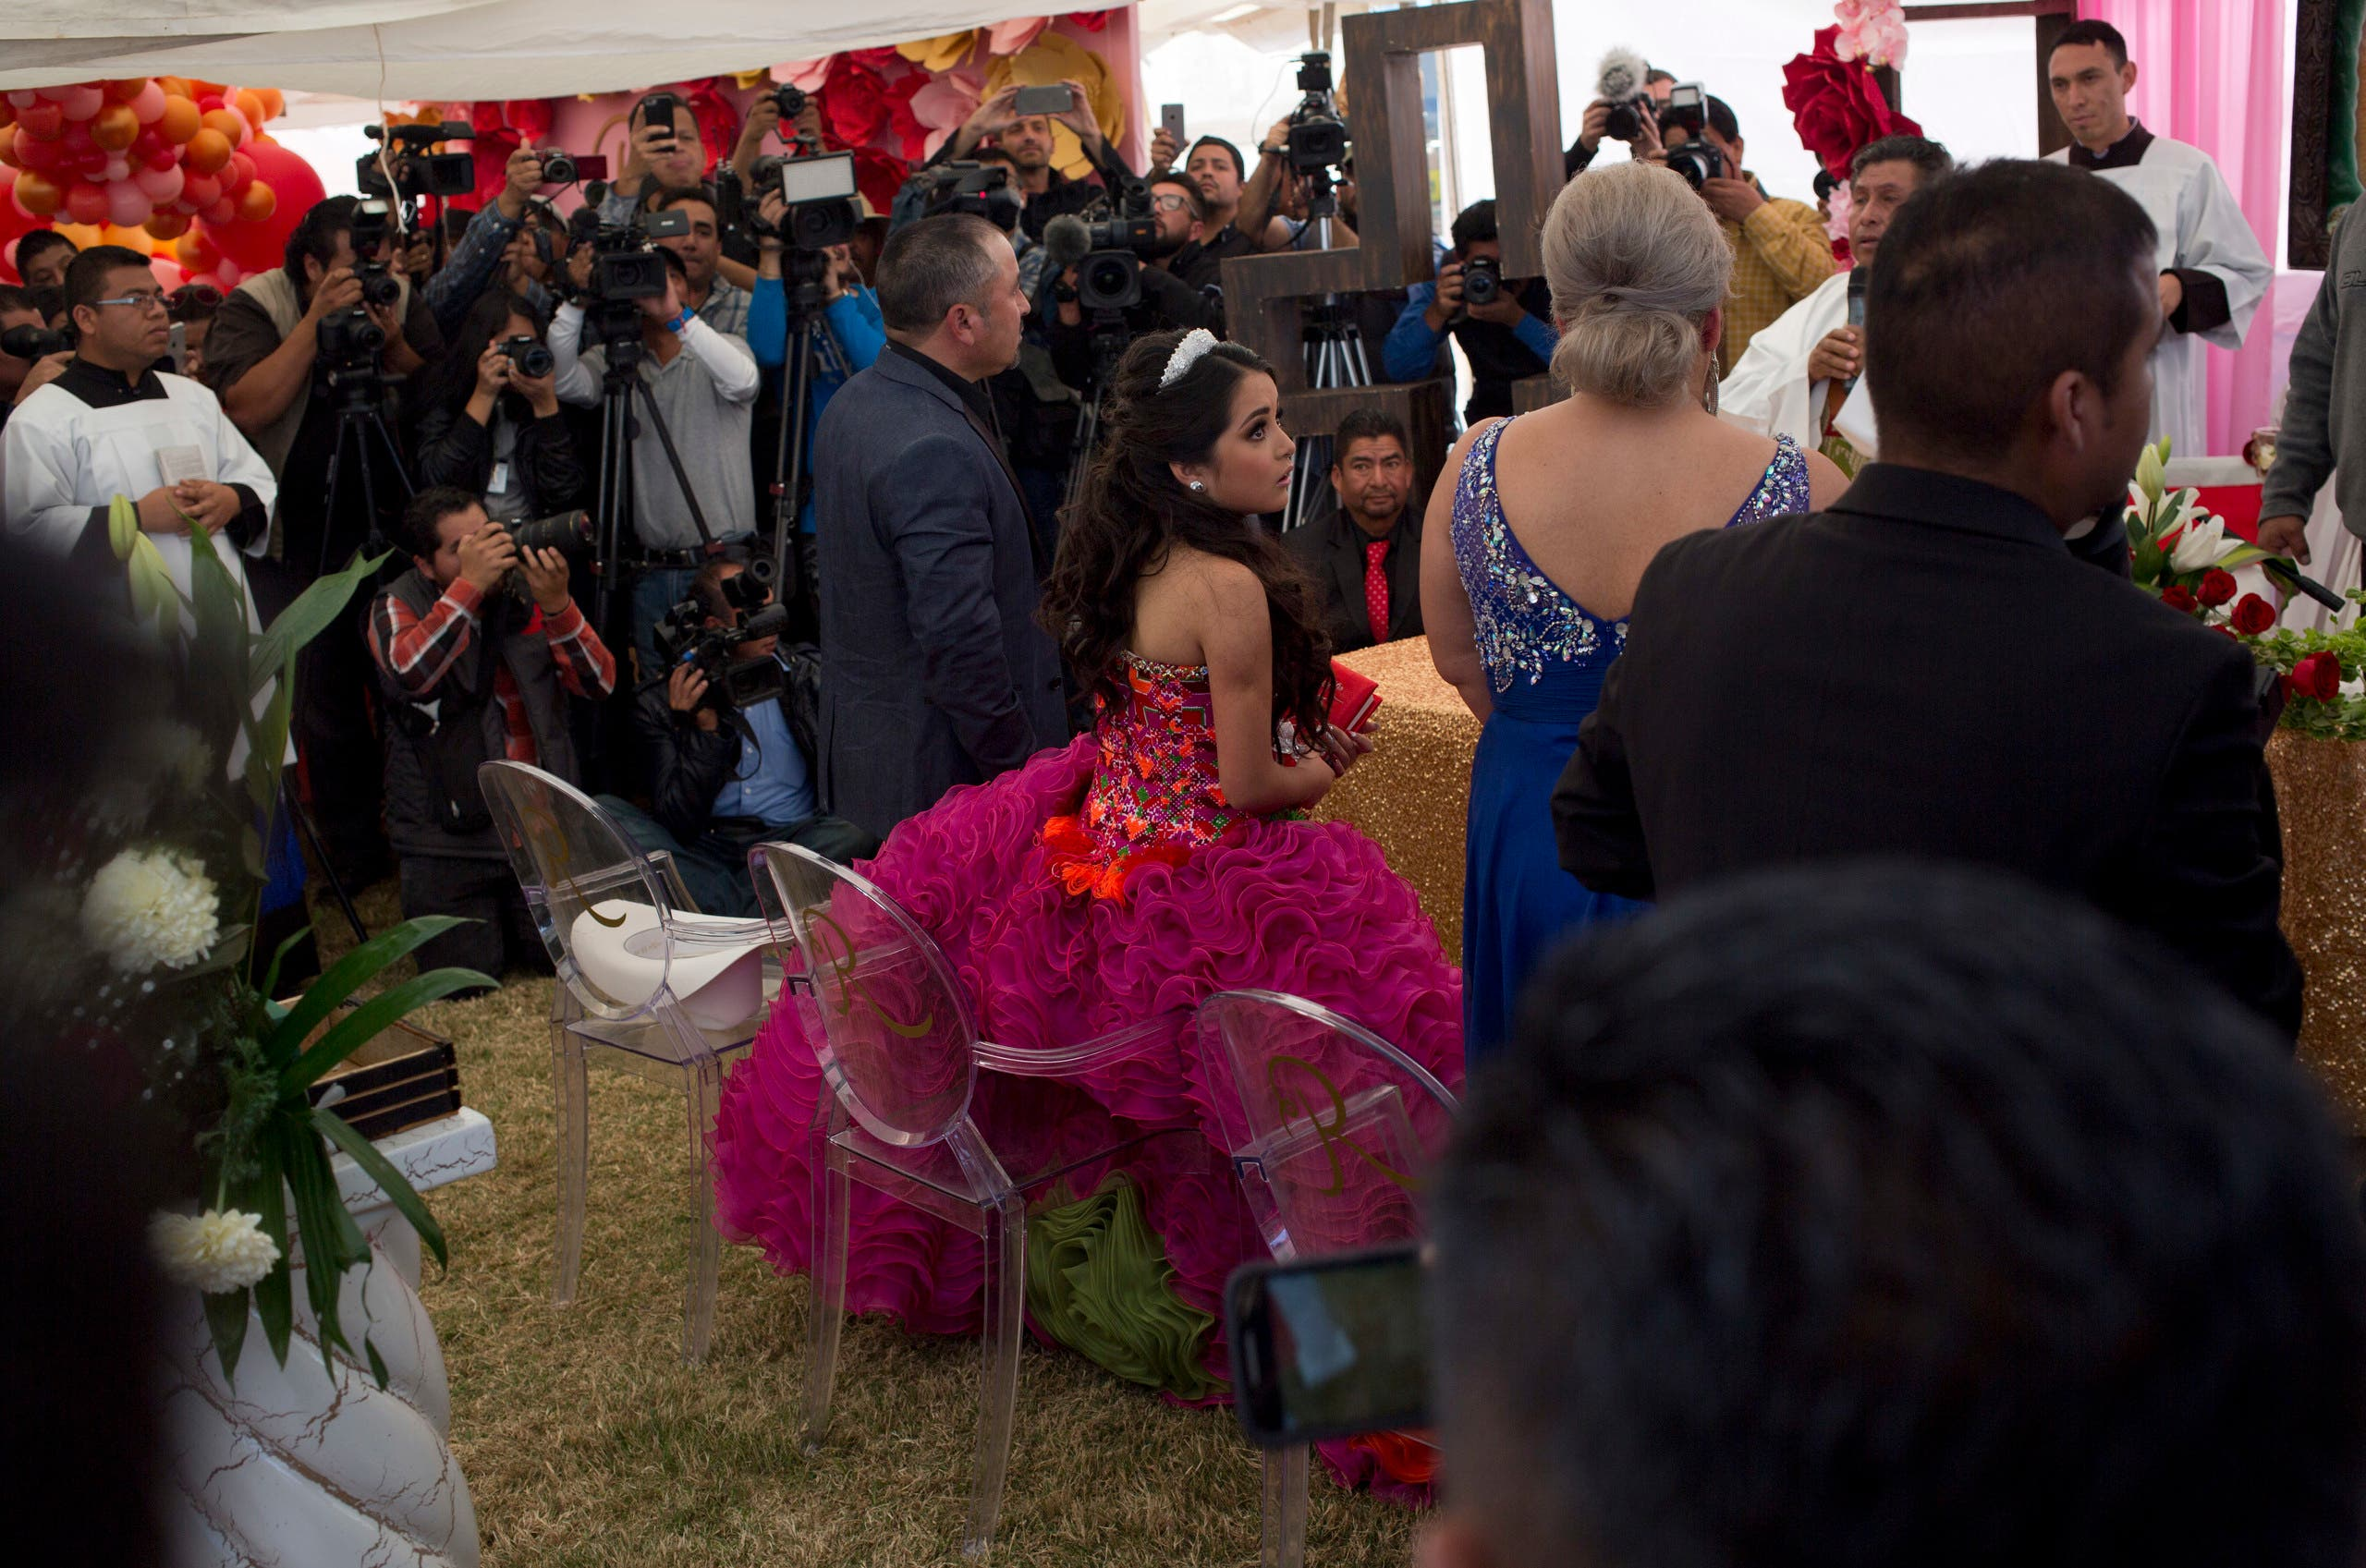 Rubi Ibarra looks at her mother Anaelda as journalists struggle to get images during a Mass as part of Rubi's down-home 15th birthday party in the village of La Joya, San Luis Potosi State, Mexico, Monday, Dec. 26, 2016. AP